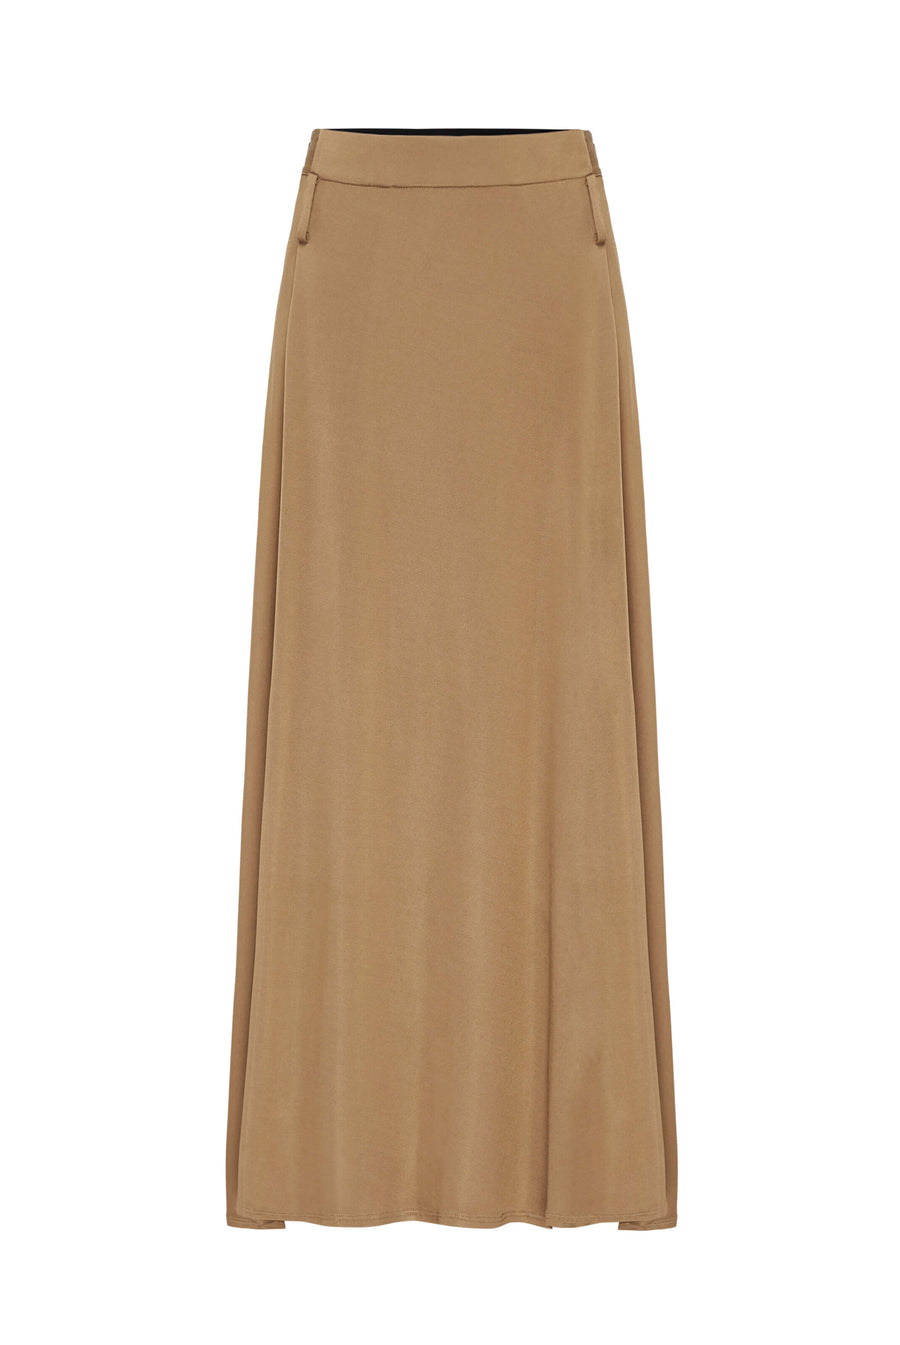 The Ochre Jersey Skirt